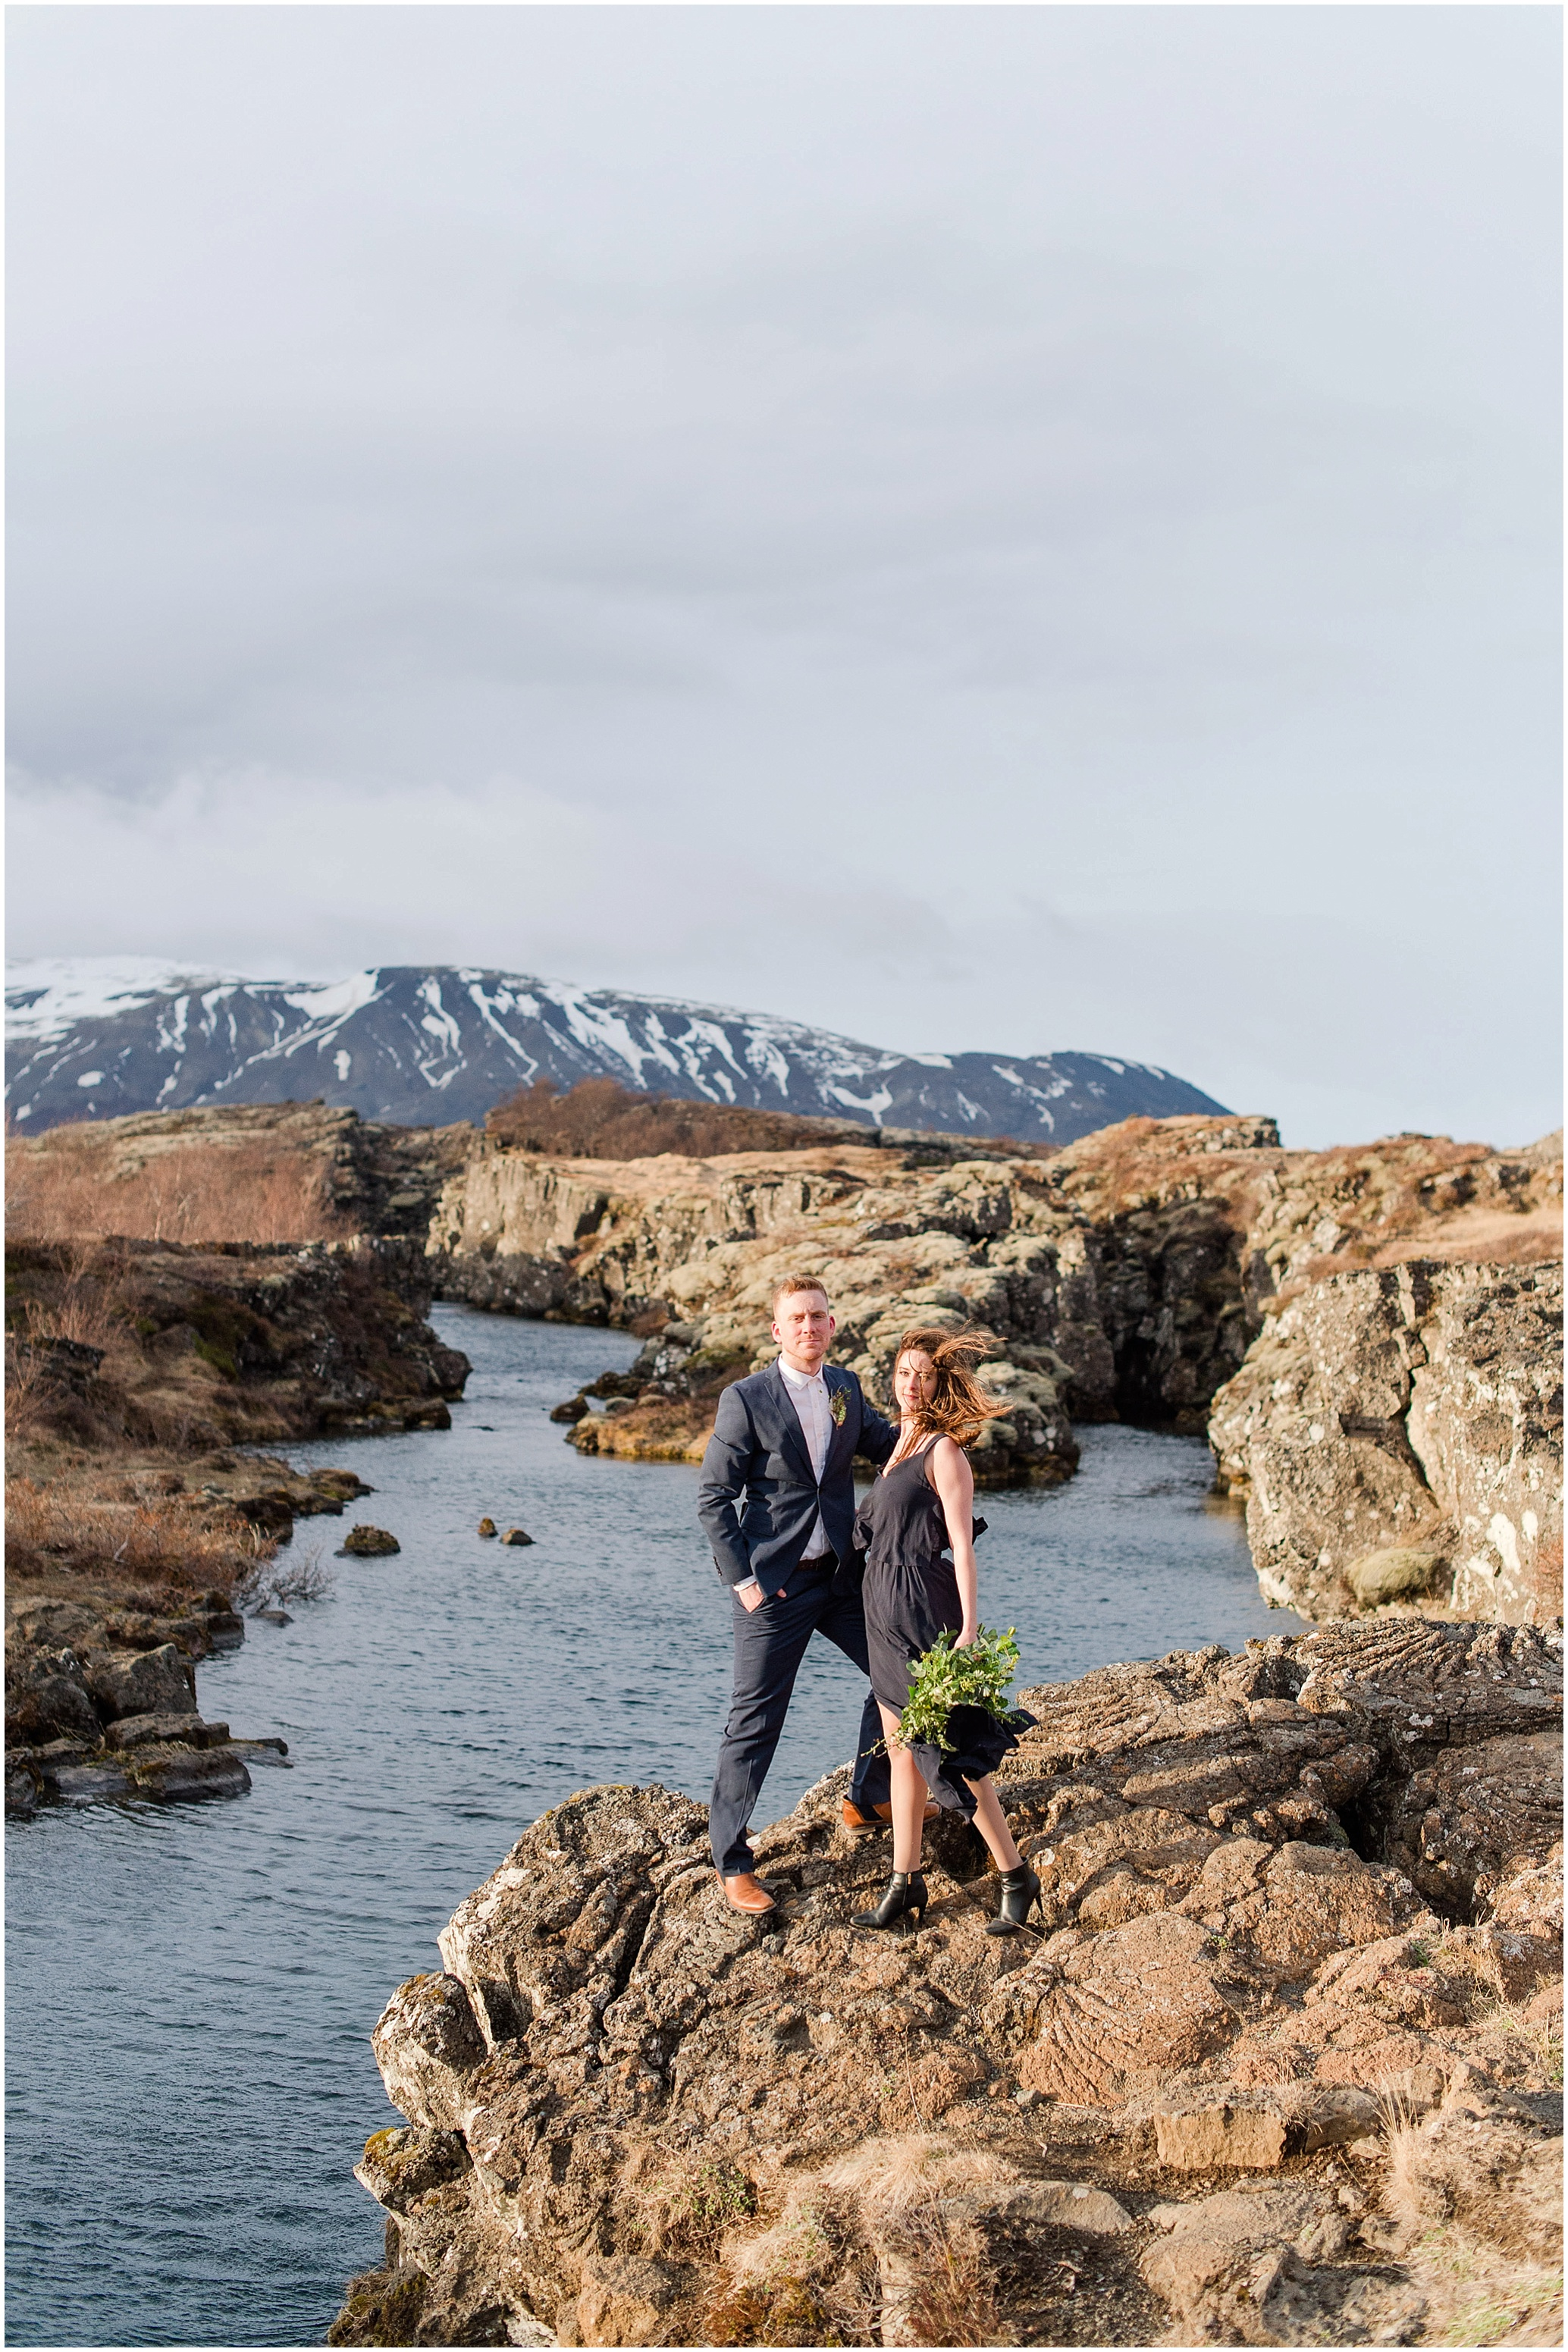 Hannah Leigh Photography Iceland Engagement Session Þingvellir_0769.jpg